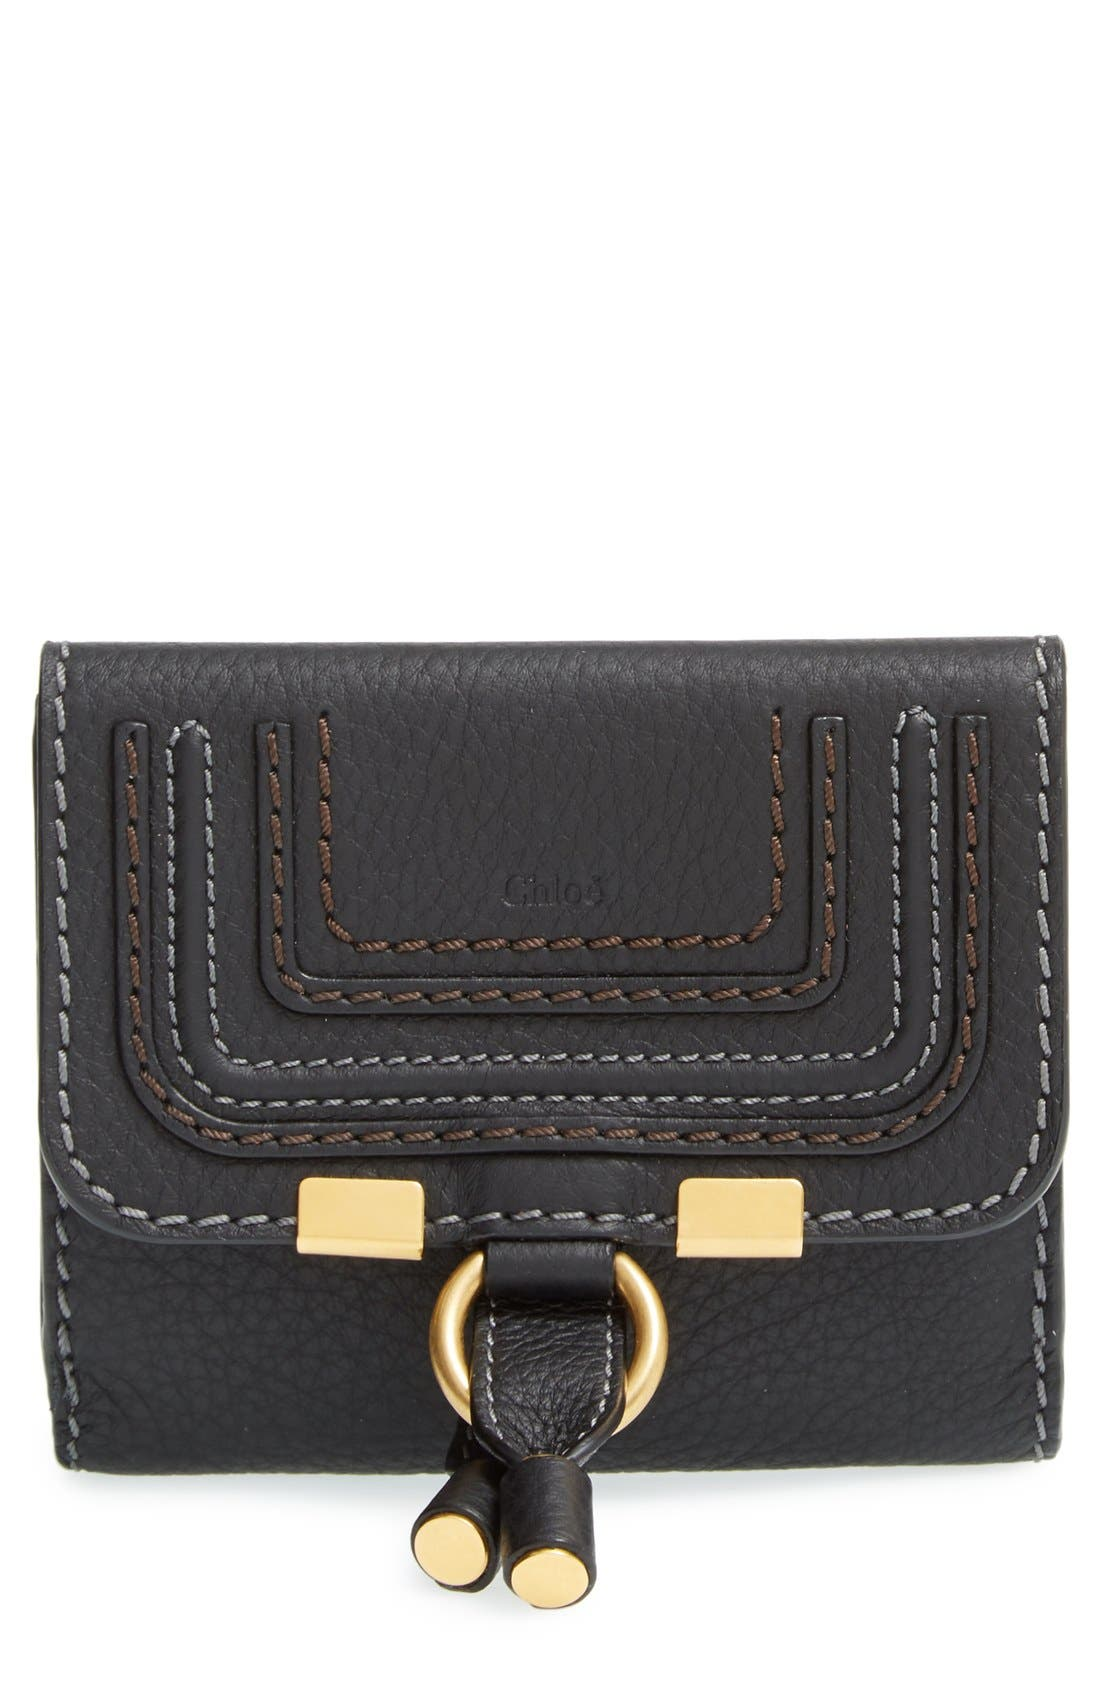 Alternate Image 1 Selected - Chloé 'Marcie' French Wallet